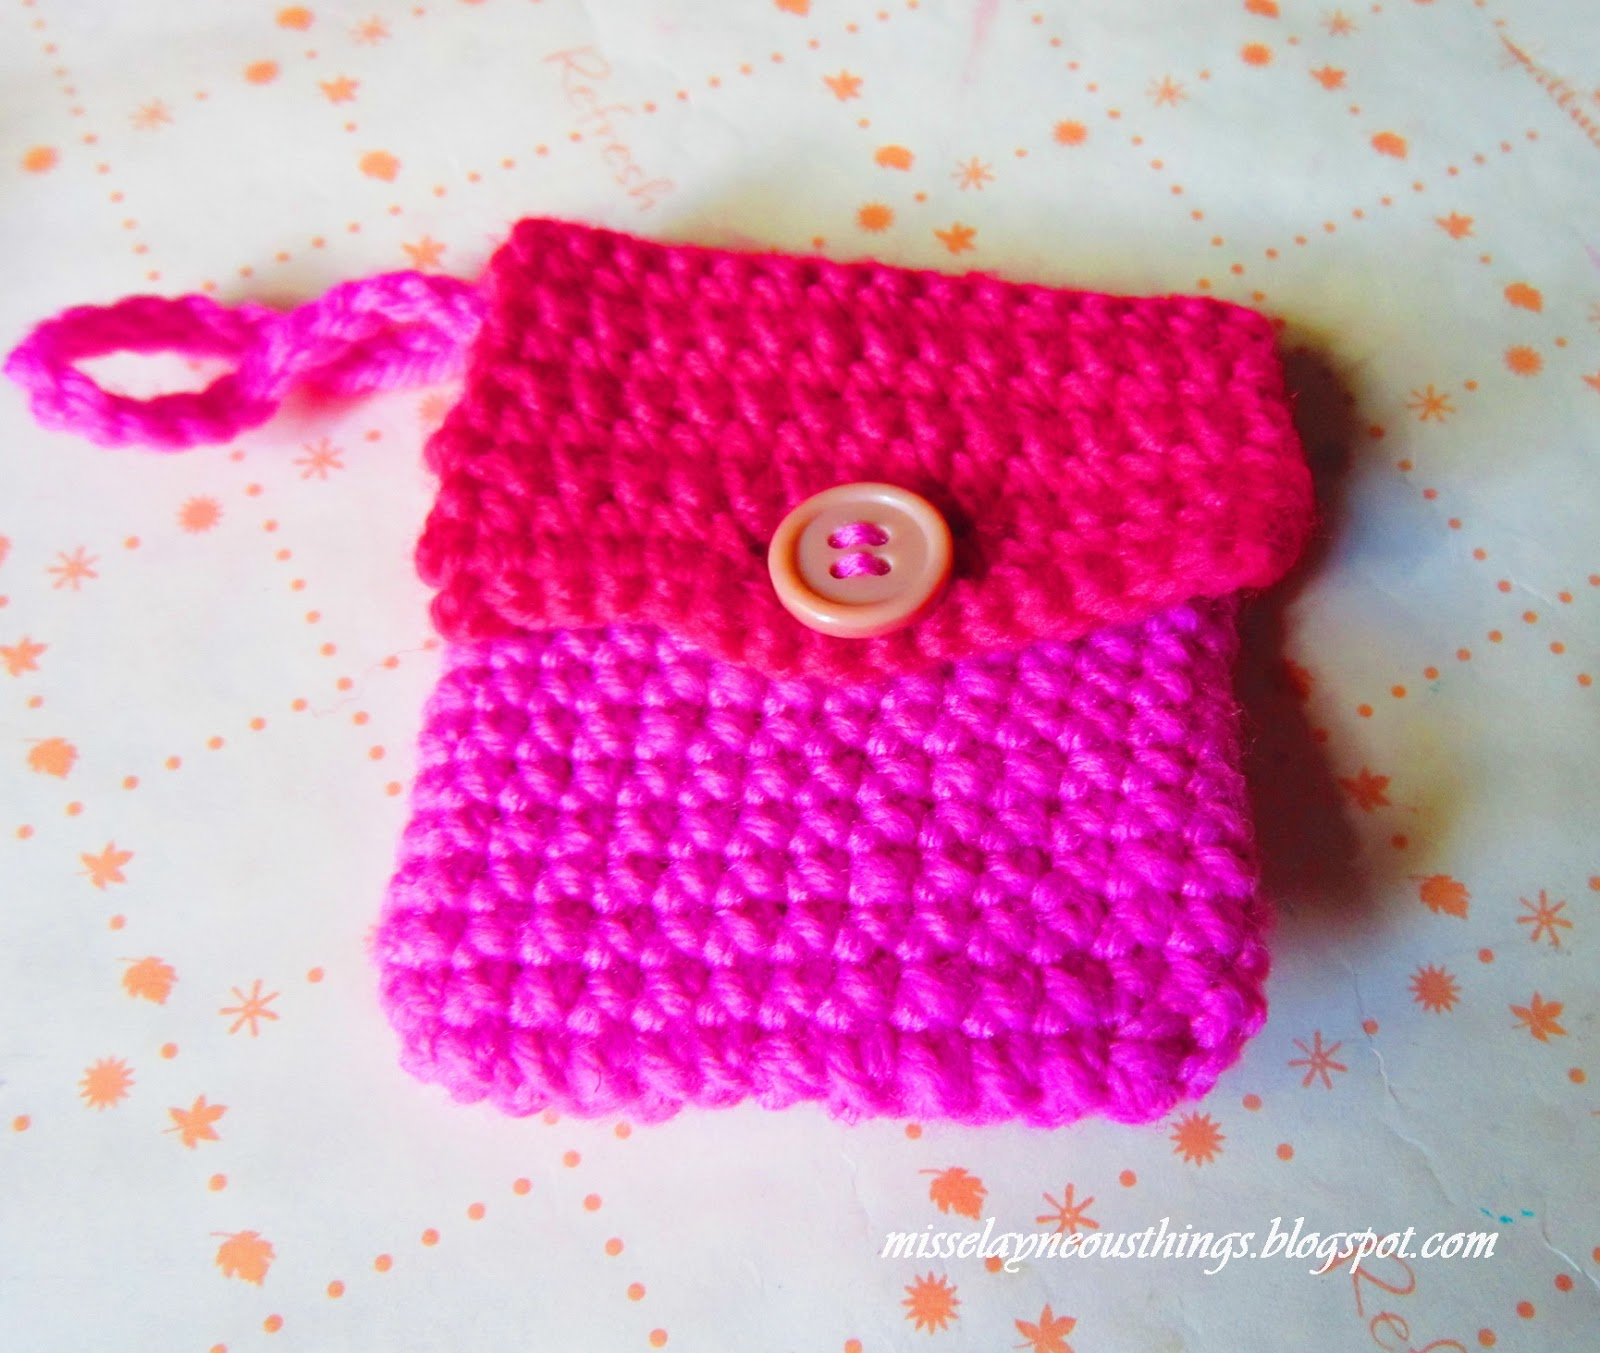 Free Crochet Coin Purse pattern - A Blog about Misselayneous Things